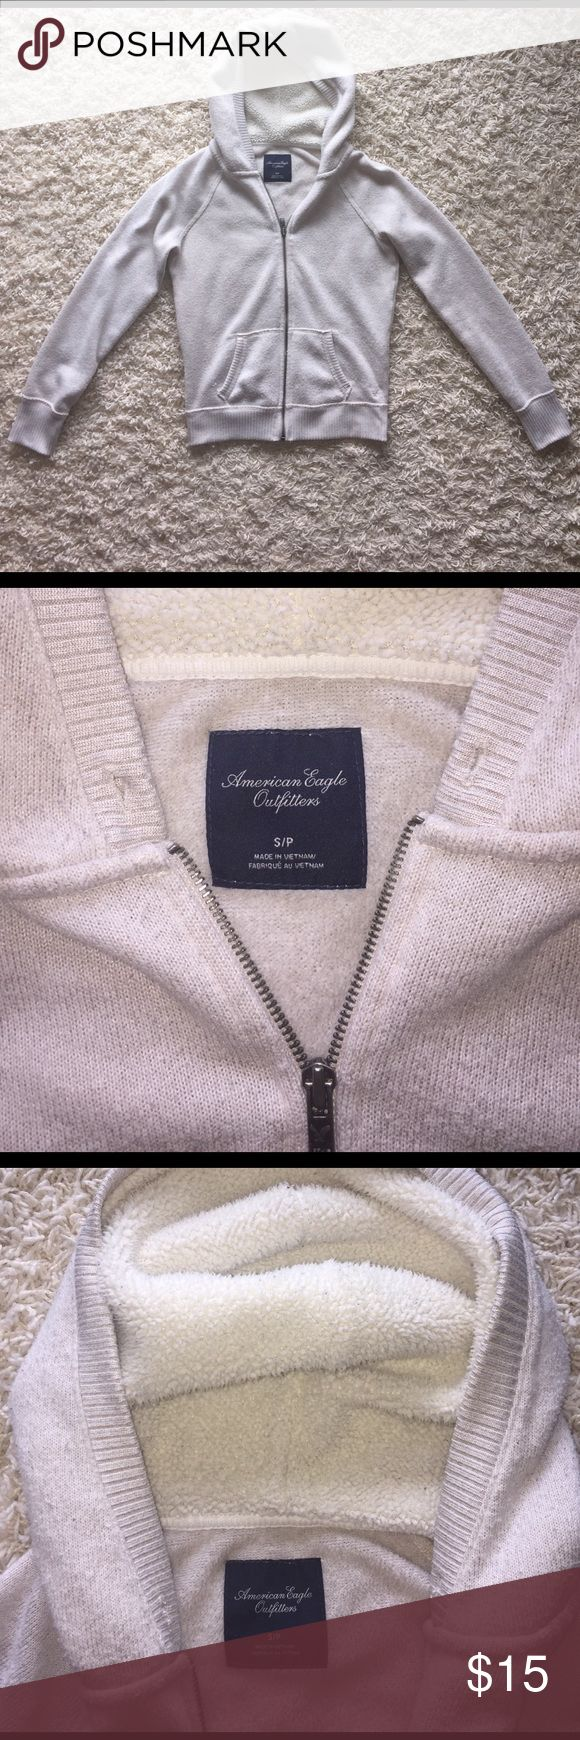 AE 🦅 Zip Up Hoodie Light beige women's zip up hoody from American Eagle. Super comfy. Thicker than your average zip up hoodie so it is pretty warm. Hood is warm and fuzzy as shown in picture. There is pilling as shown in pictures as well. Missing hoody tie. Otherwise in good condition! American Eagle Outfitters Sweaters